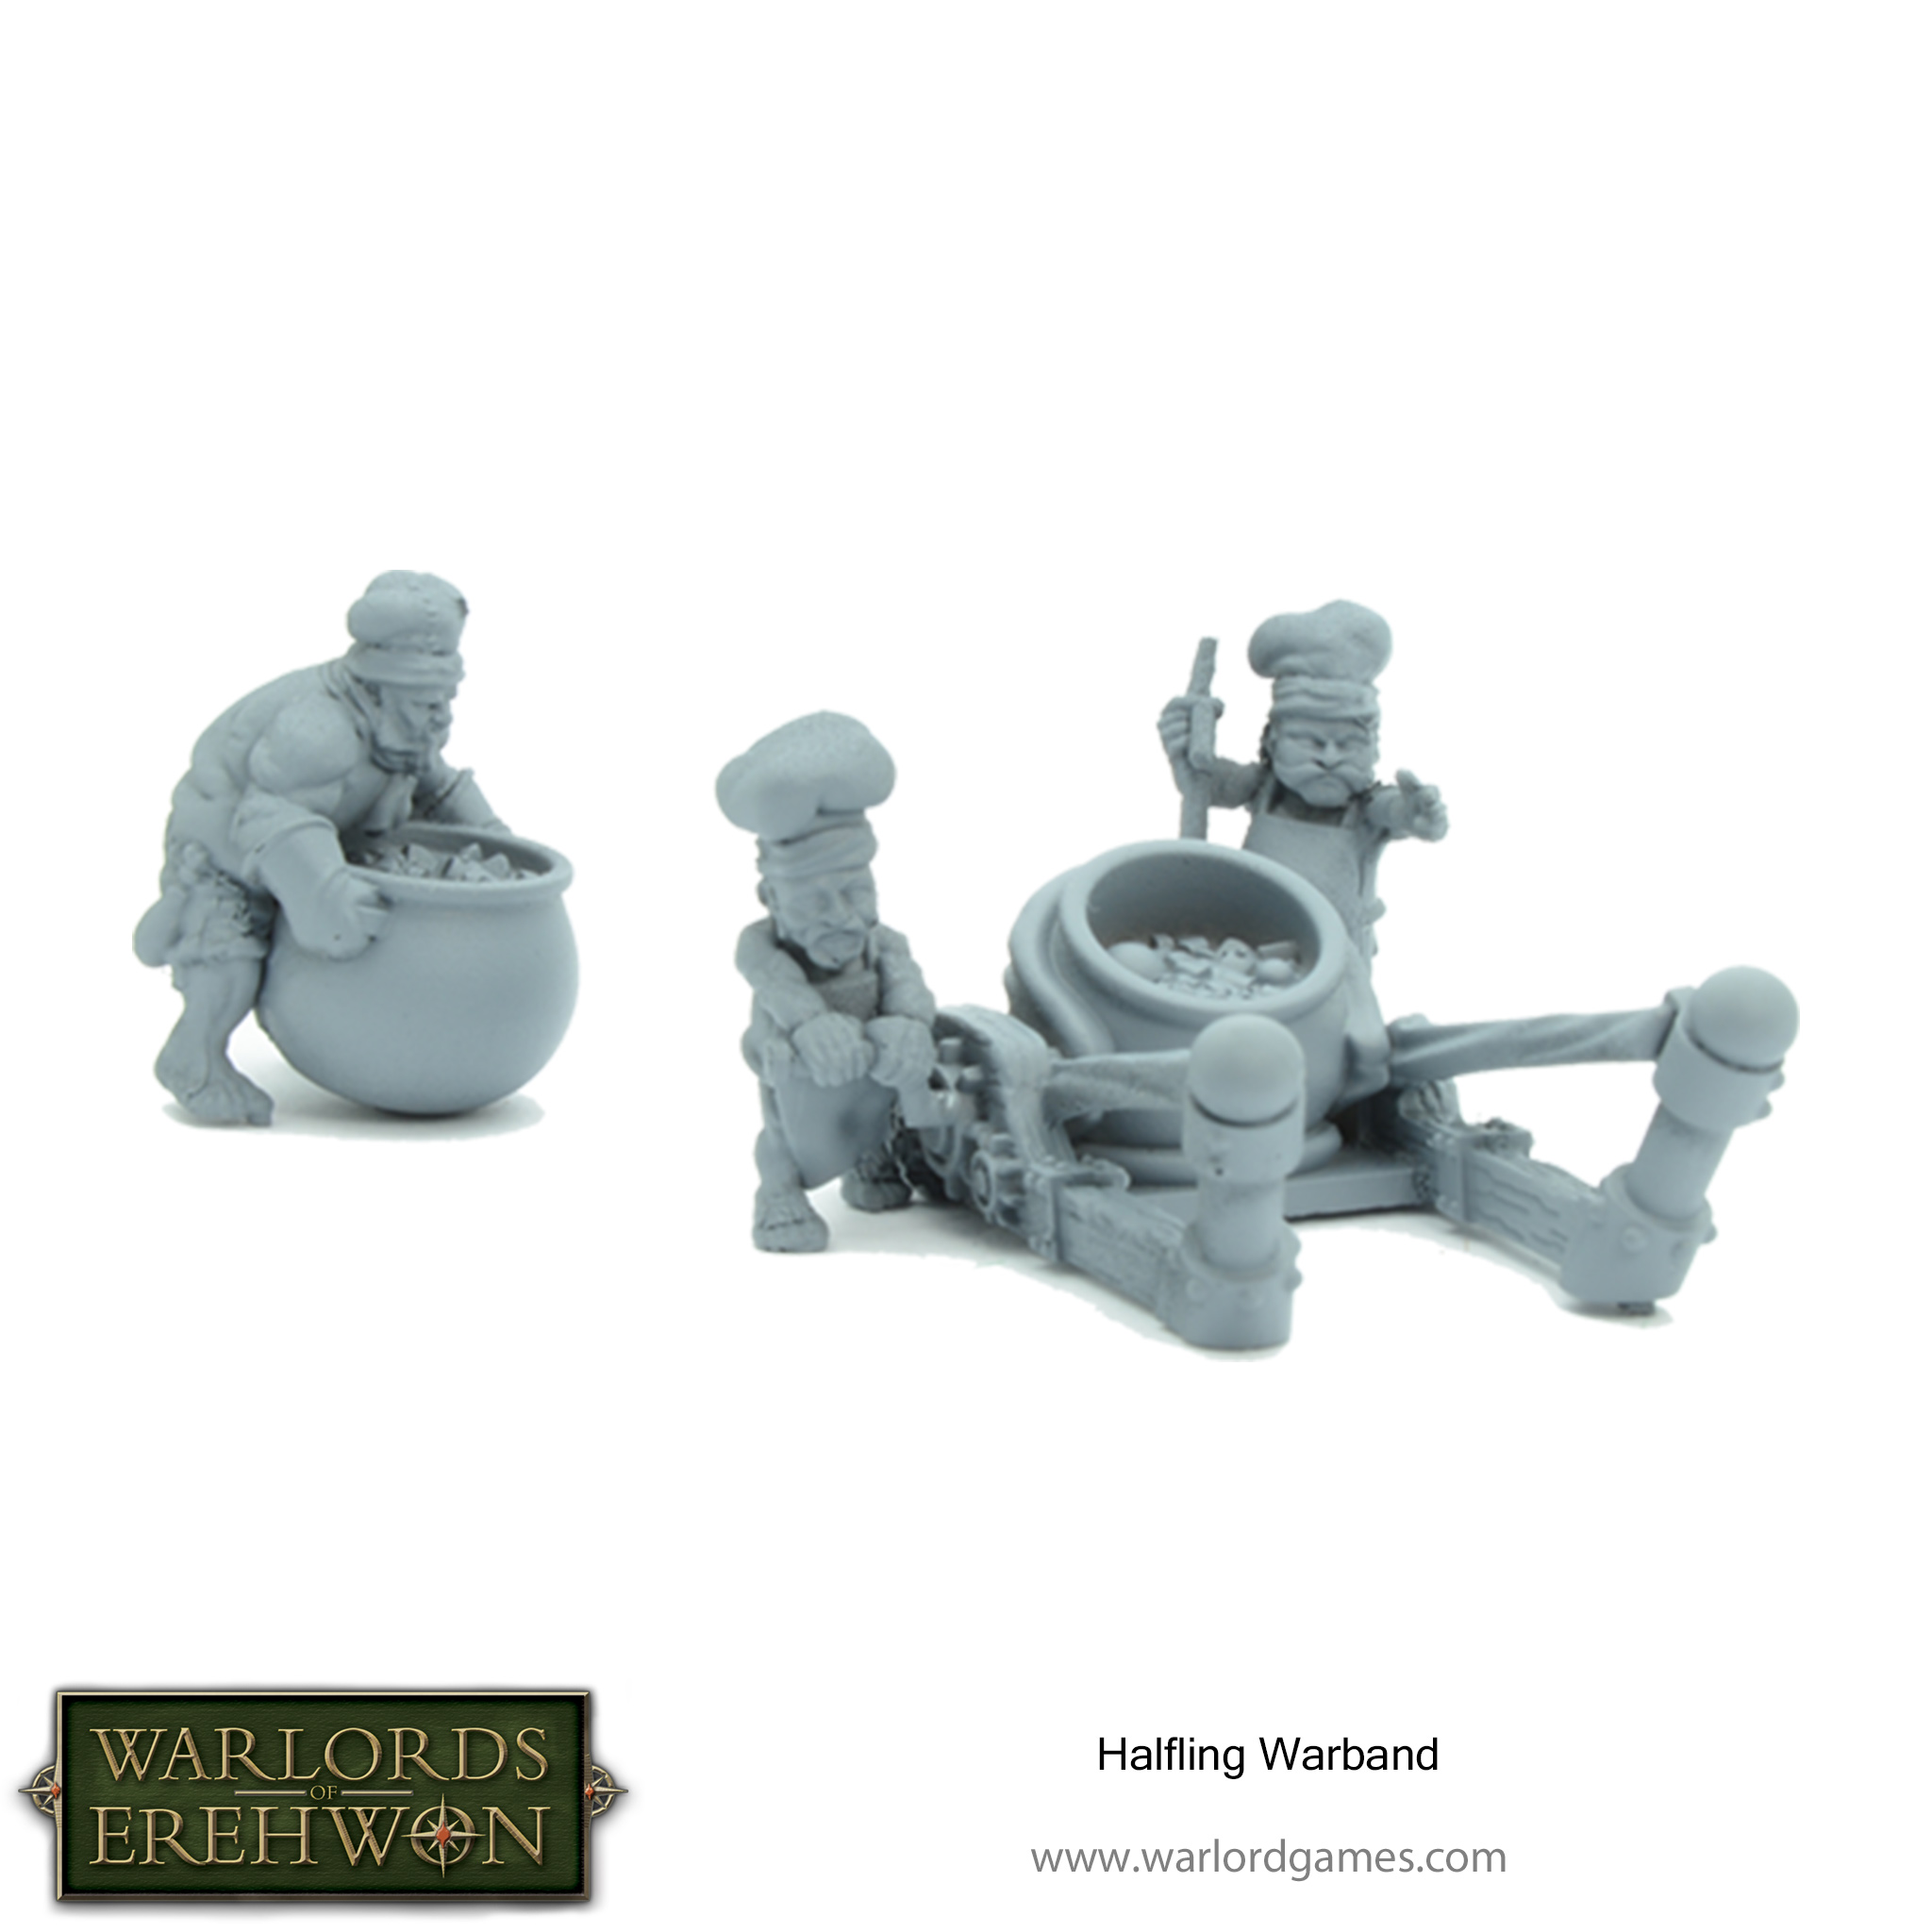 Warlords of Erehwon Halflings with Swords ADD/'L ITEMS SHIP FREE